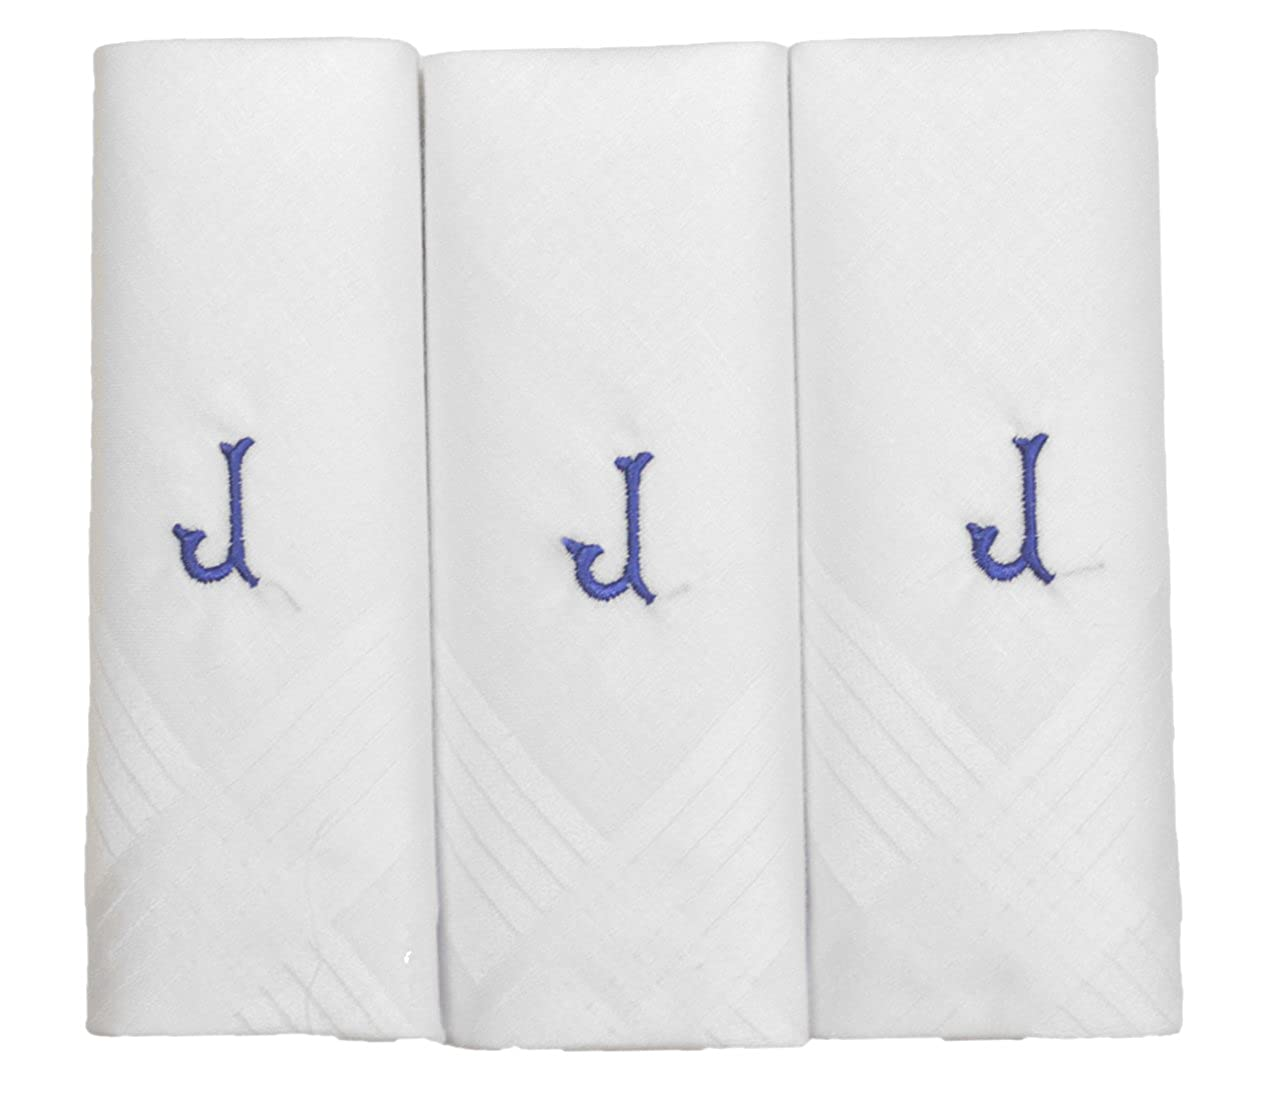 Mens/Gentlemens 3 Pack Plain White Handkerchiefs With 1 Letter Name Initials, J